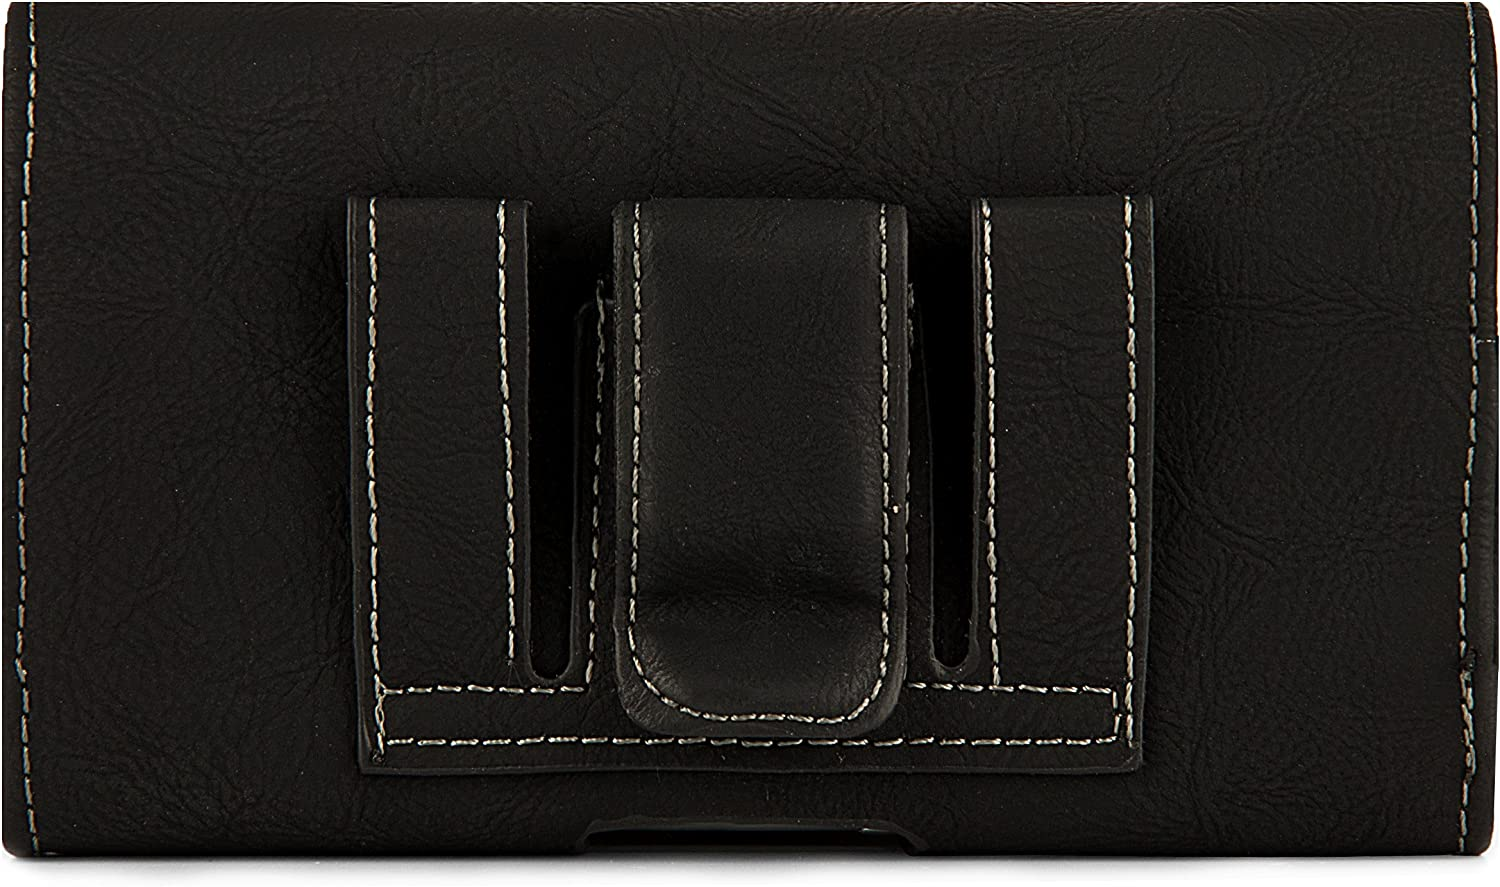 Cell Phone Holster Pouch with Belt Clip for iPhone 12 Pro, 12, 11, 11 Pro, XR, XS, 8, X (Matte Black)